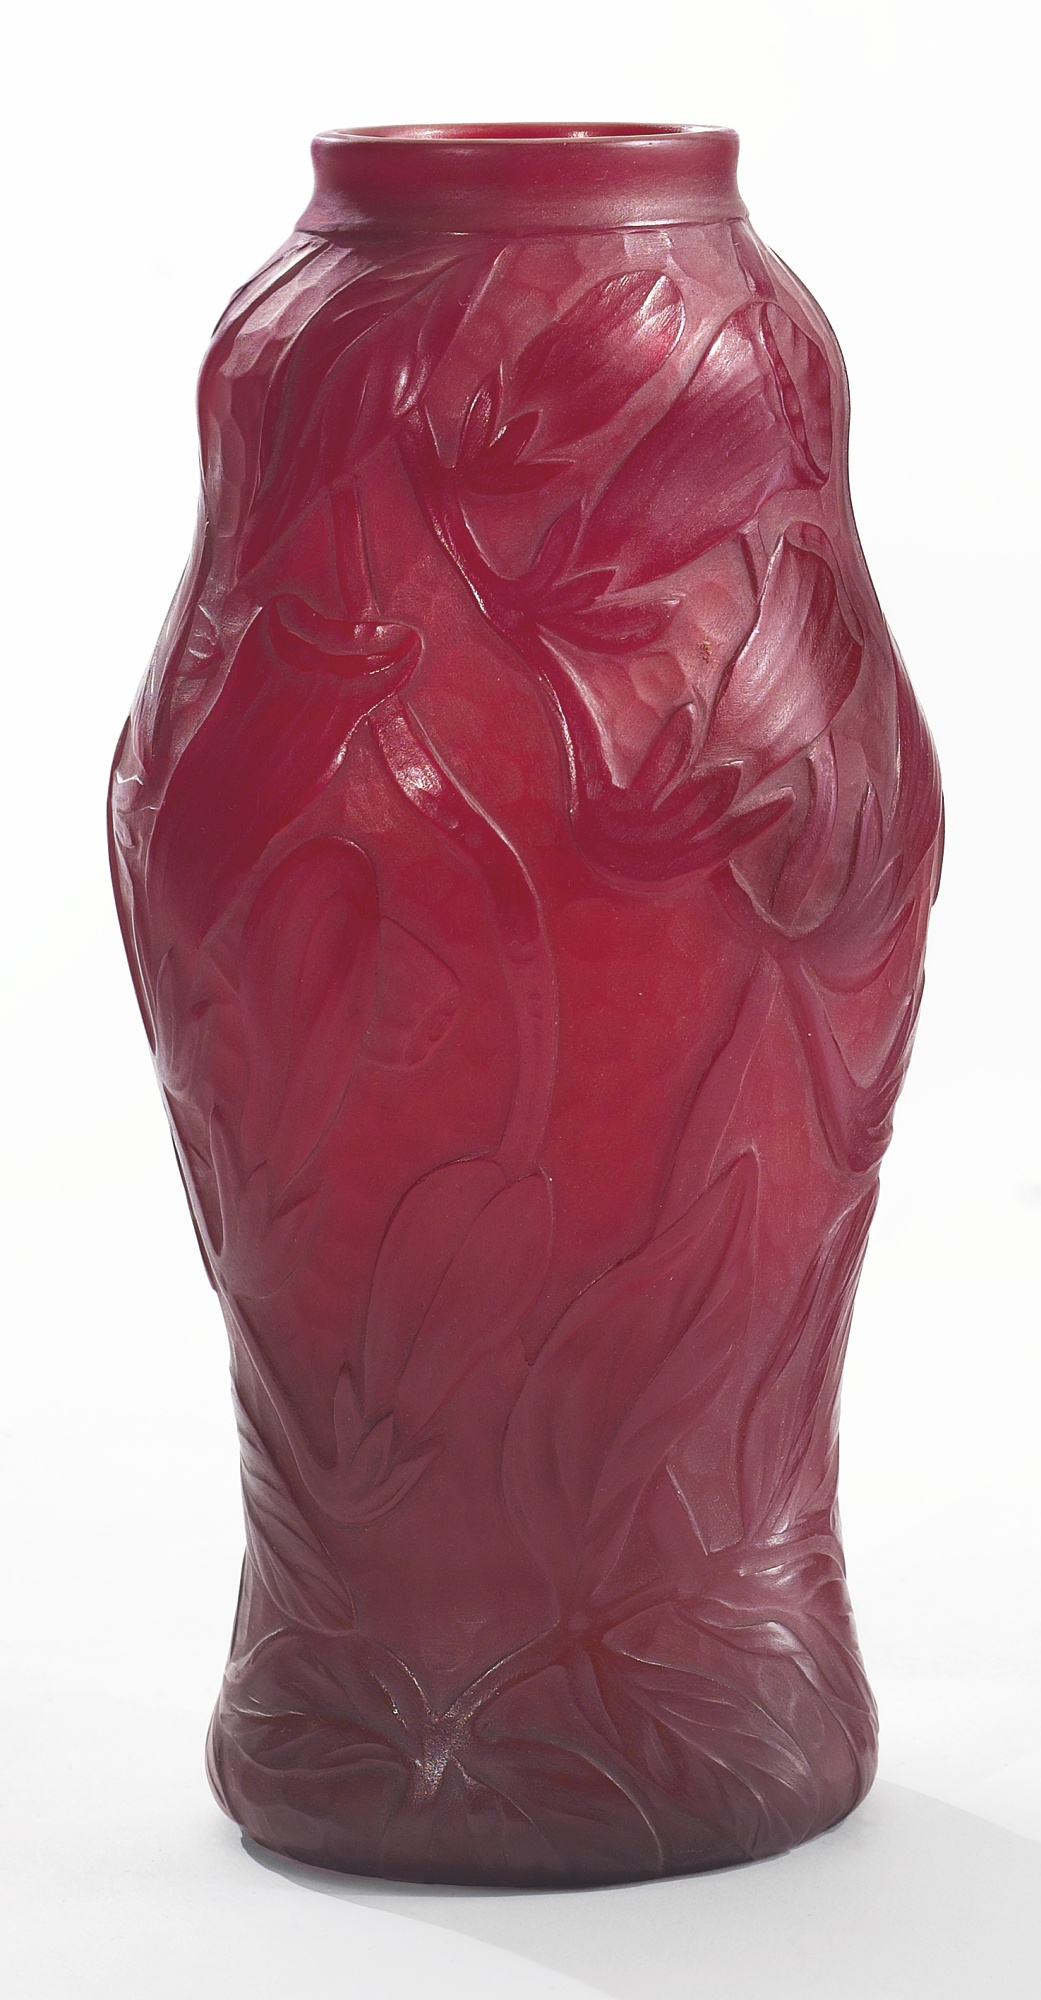 Wonderful, rare Tiffany Favrile red carved vase, Sotheby's lot #304